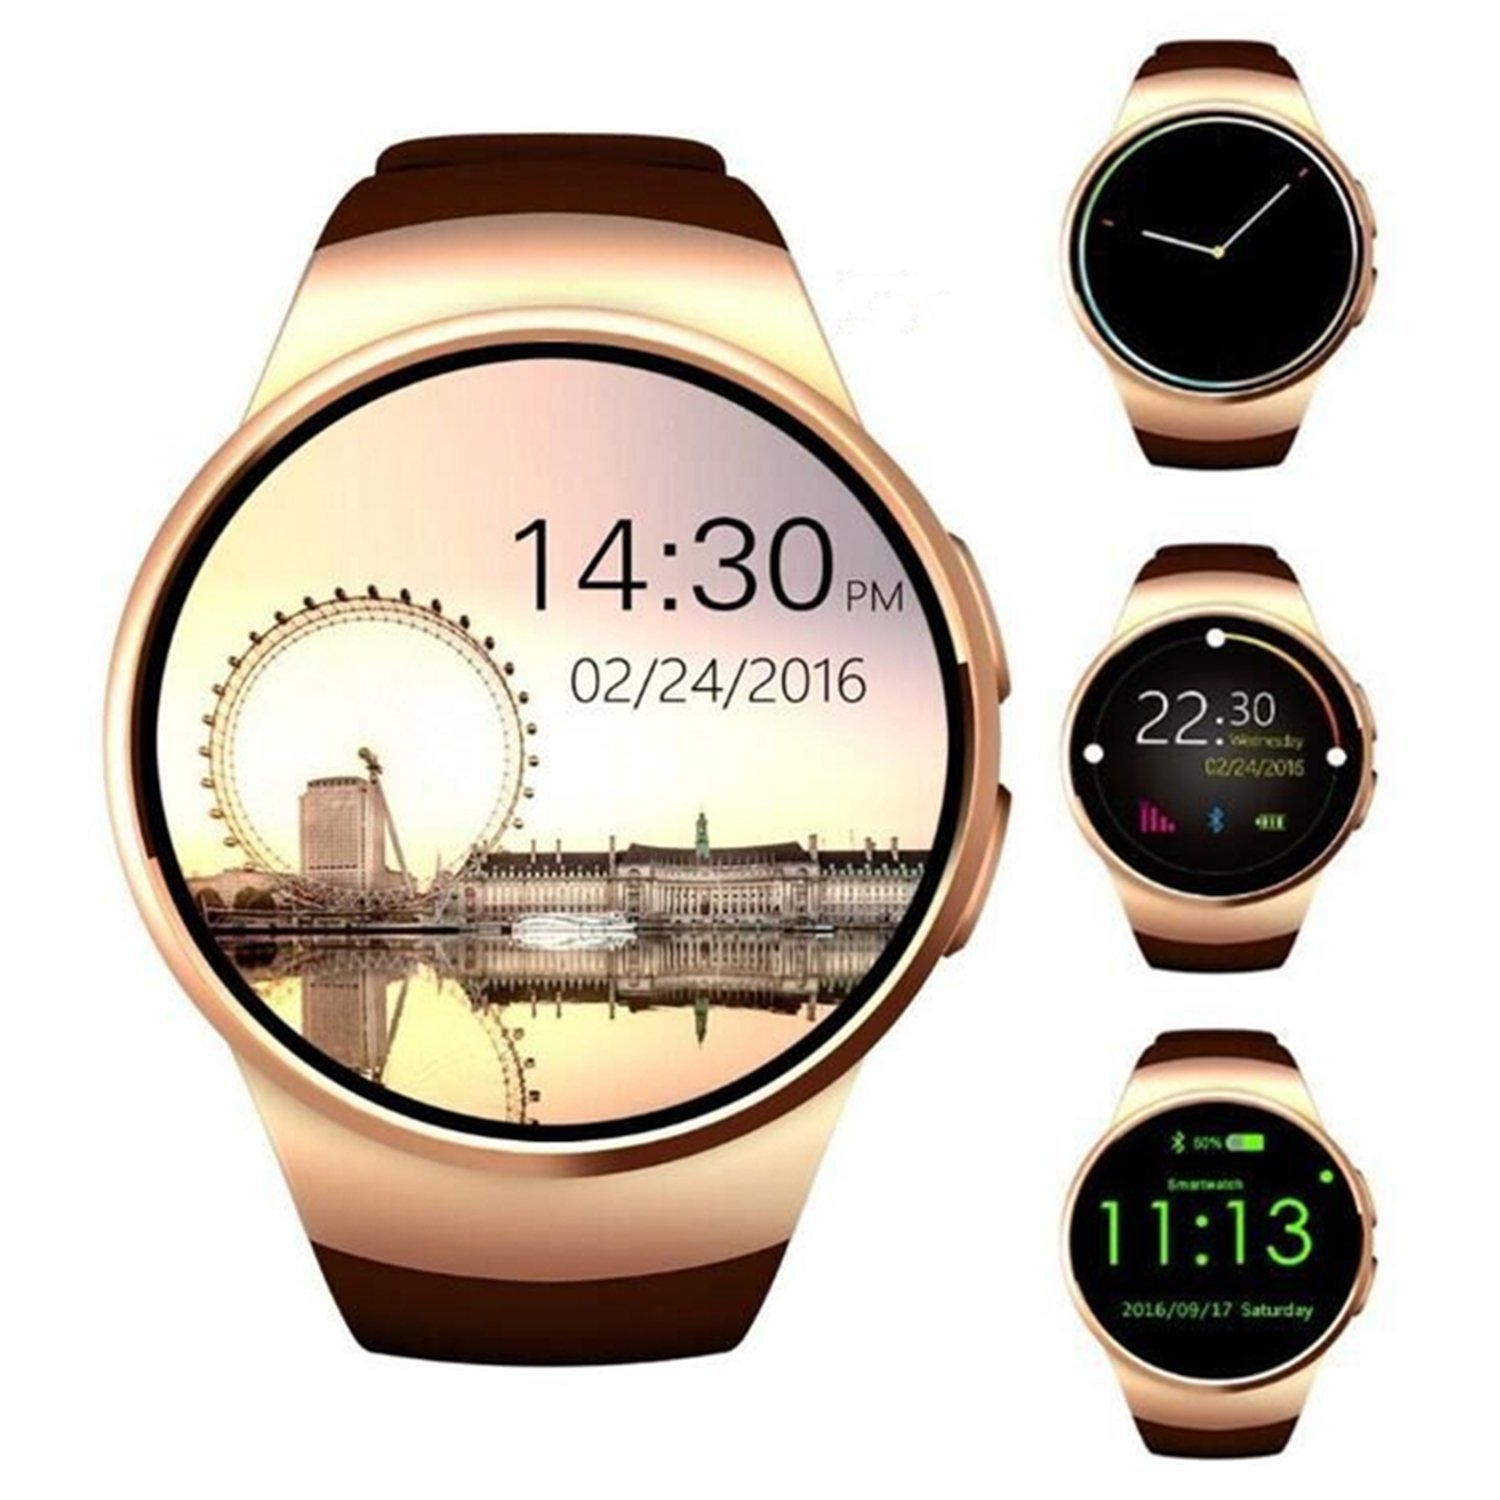 TKSTAR 1.3'' Screen Smartwatch,Bluetooth Heart Rate Monitor Watches Remote Camera for Women/Men/Teens,Sim Card Slot Call Reminder,Text for Iphone,Android,Samsung etc. (Gold) by TK-STAR